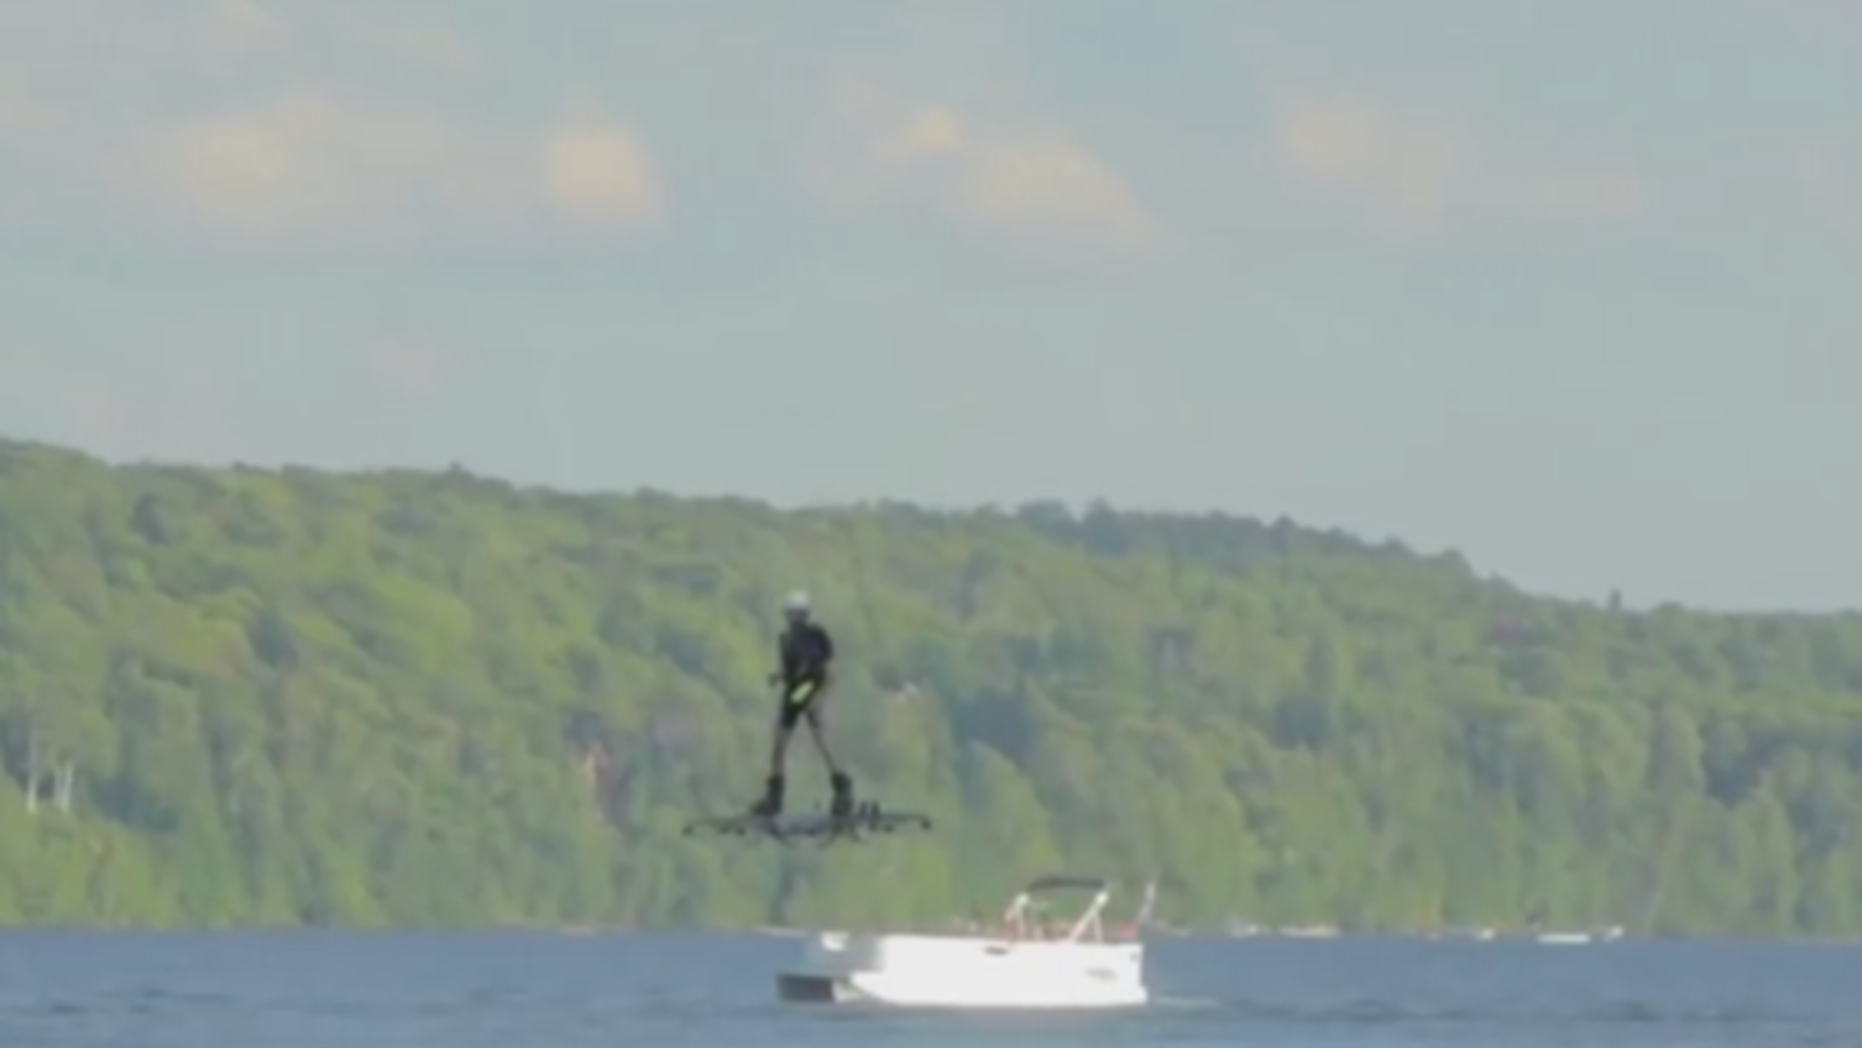 Catalin Alexandru Duru soars over a lake in Quebec, Canada in this screenshot of the Guinness World Records YouTube video.